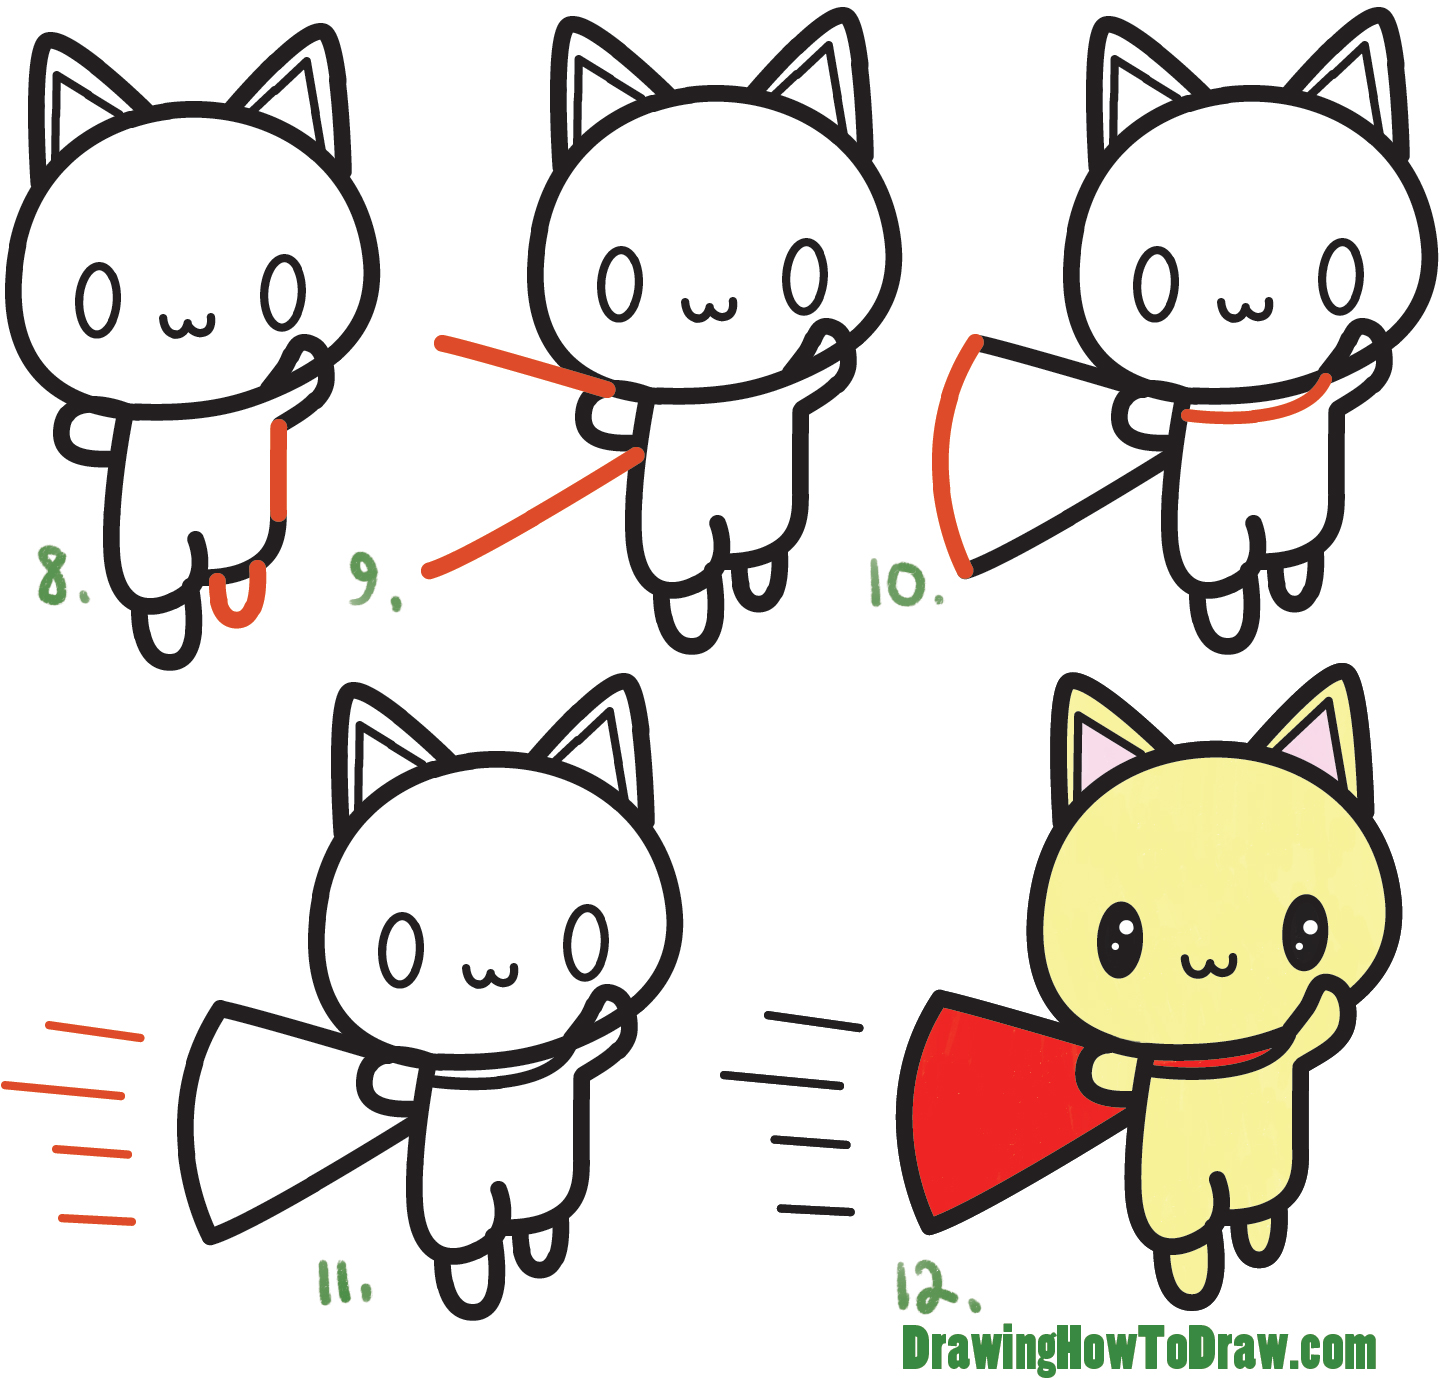 Learn How to Draw a Cute Cartoon Cat Super Hero (Kawaii) with Simple Steps Drawing Lesson for Children